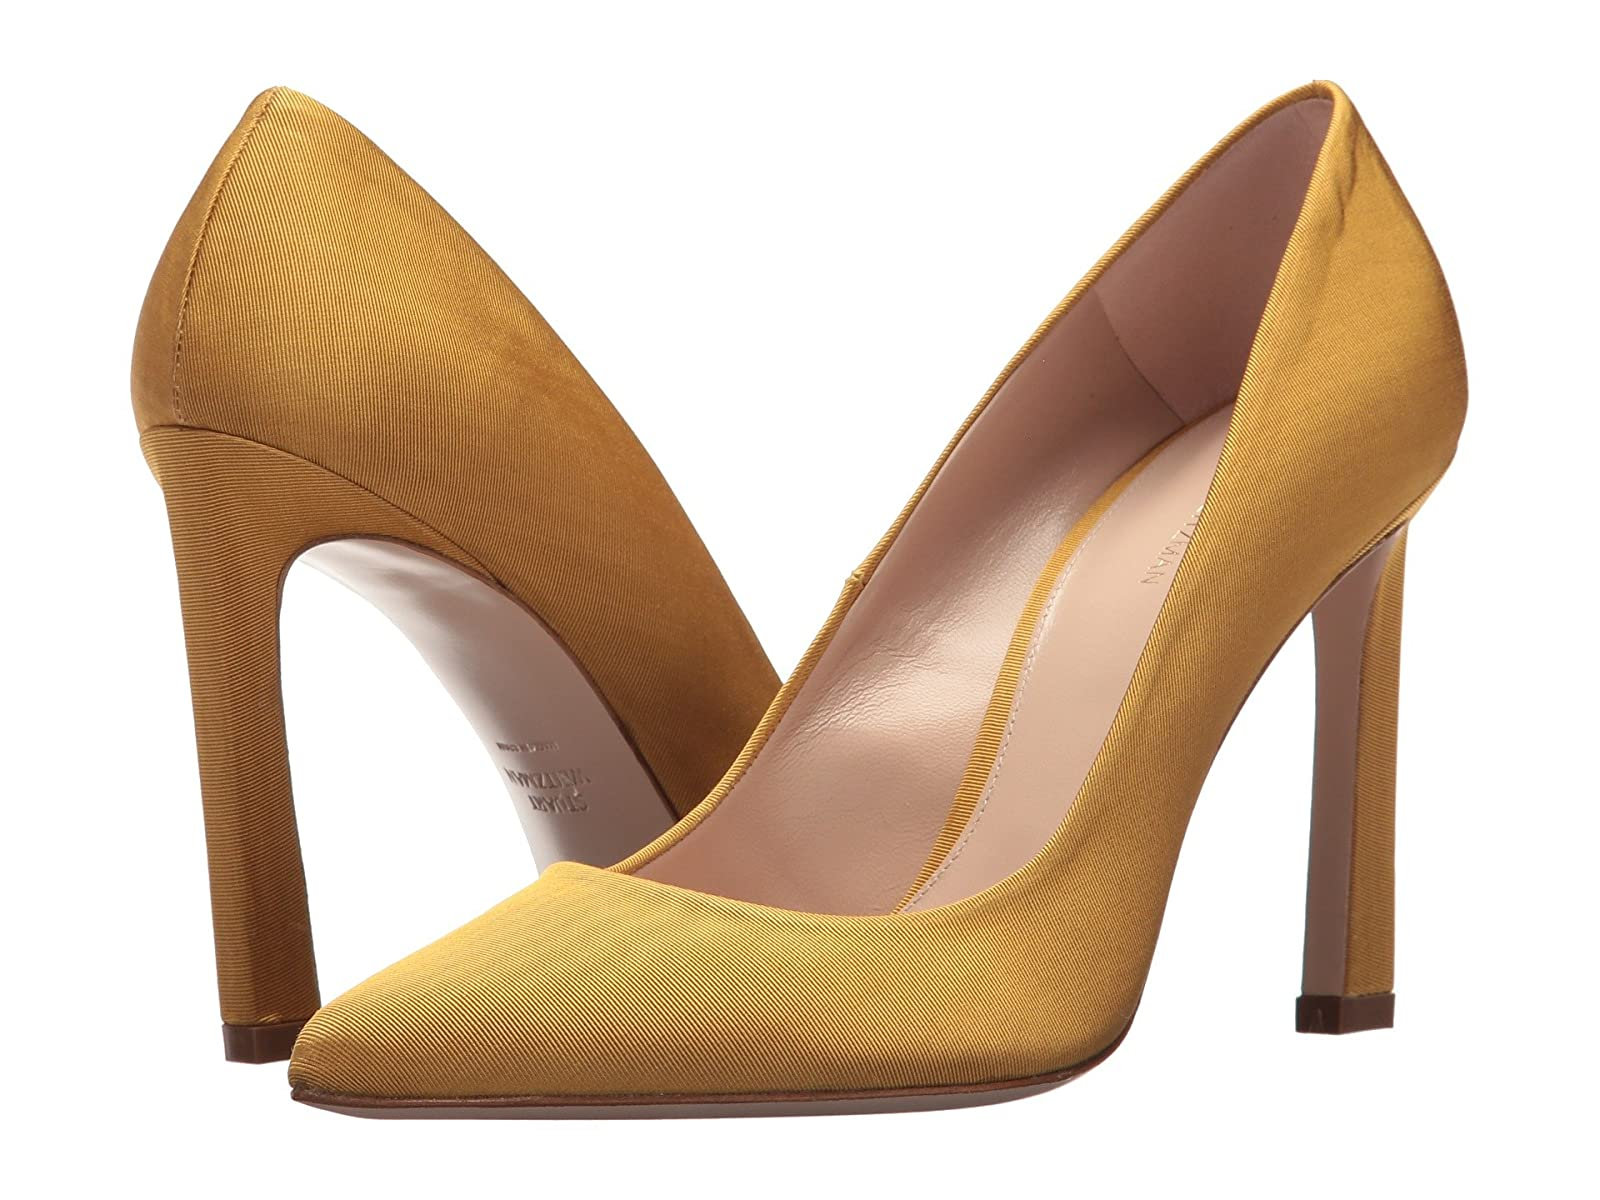 Stuart Weitzman ChicsterCheap and distinctive eye-catching shoes